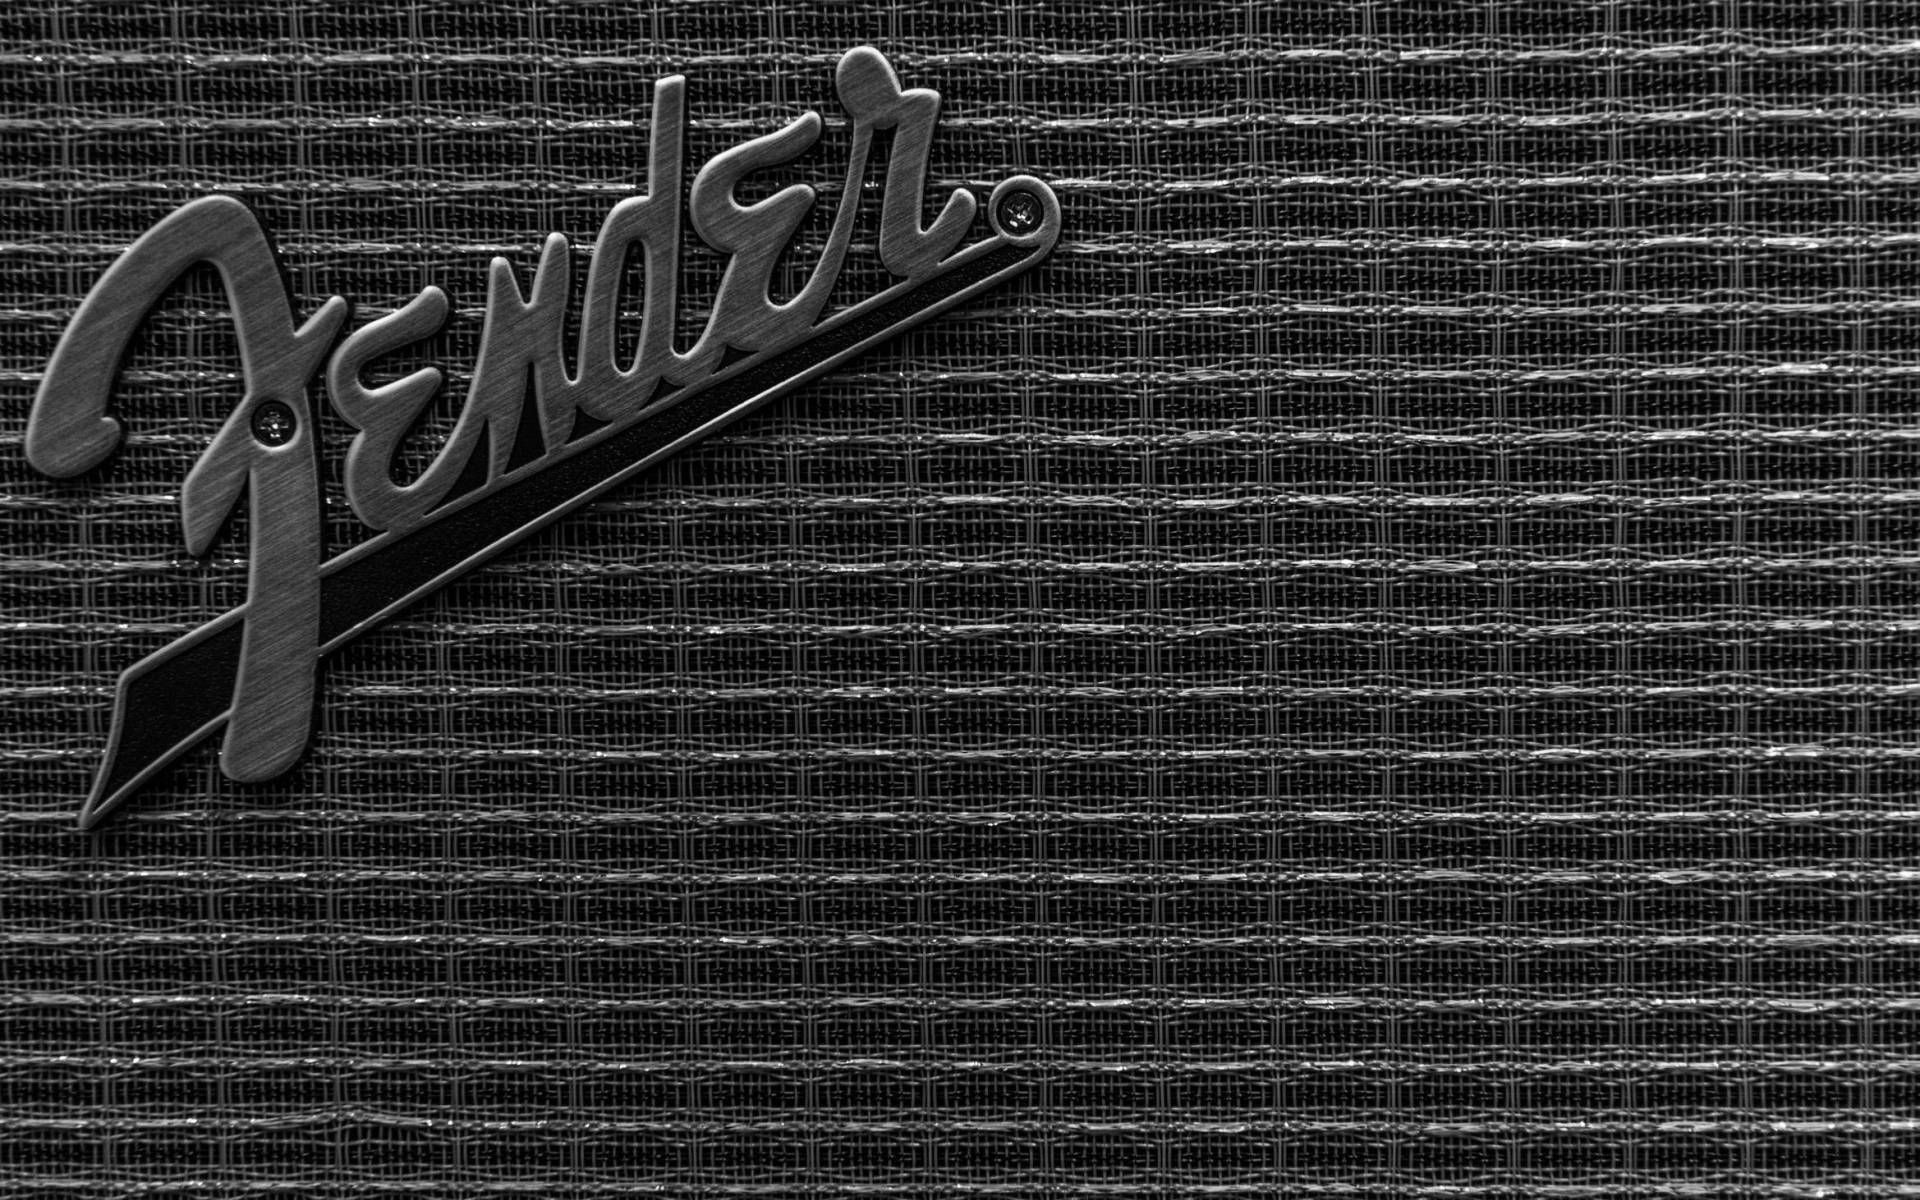 Fender Guitar Amp Close Up 1920x1200 Via Classy Bro Guitarras